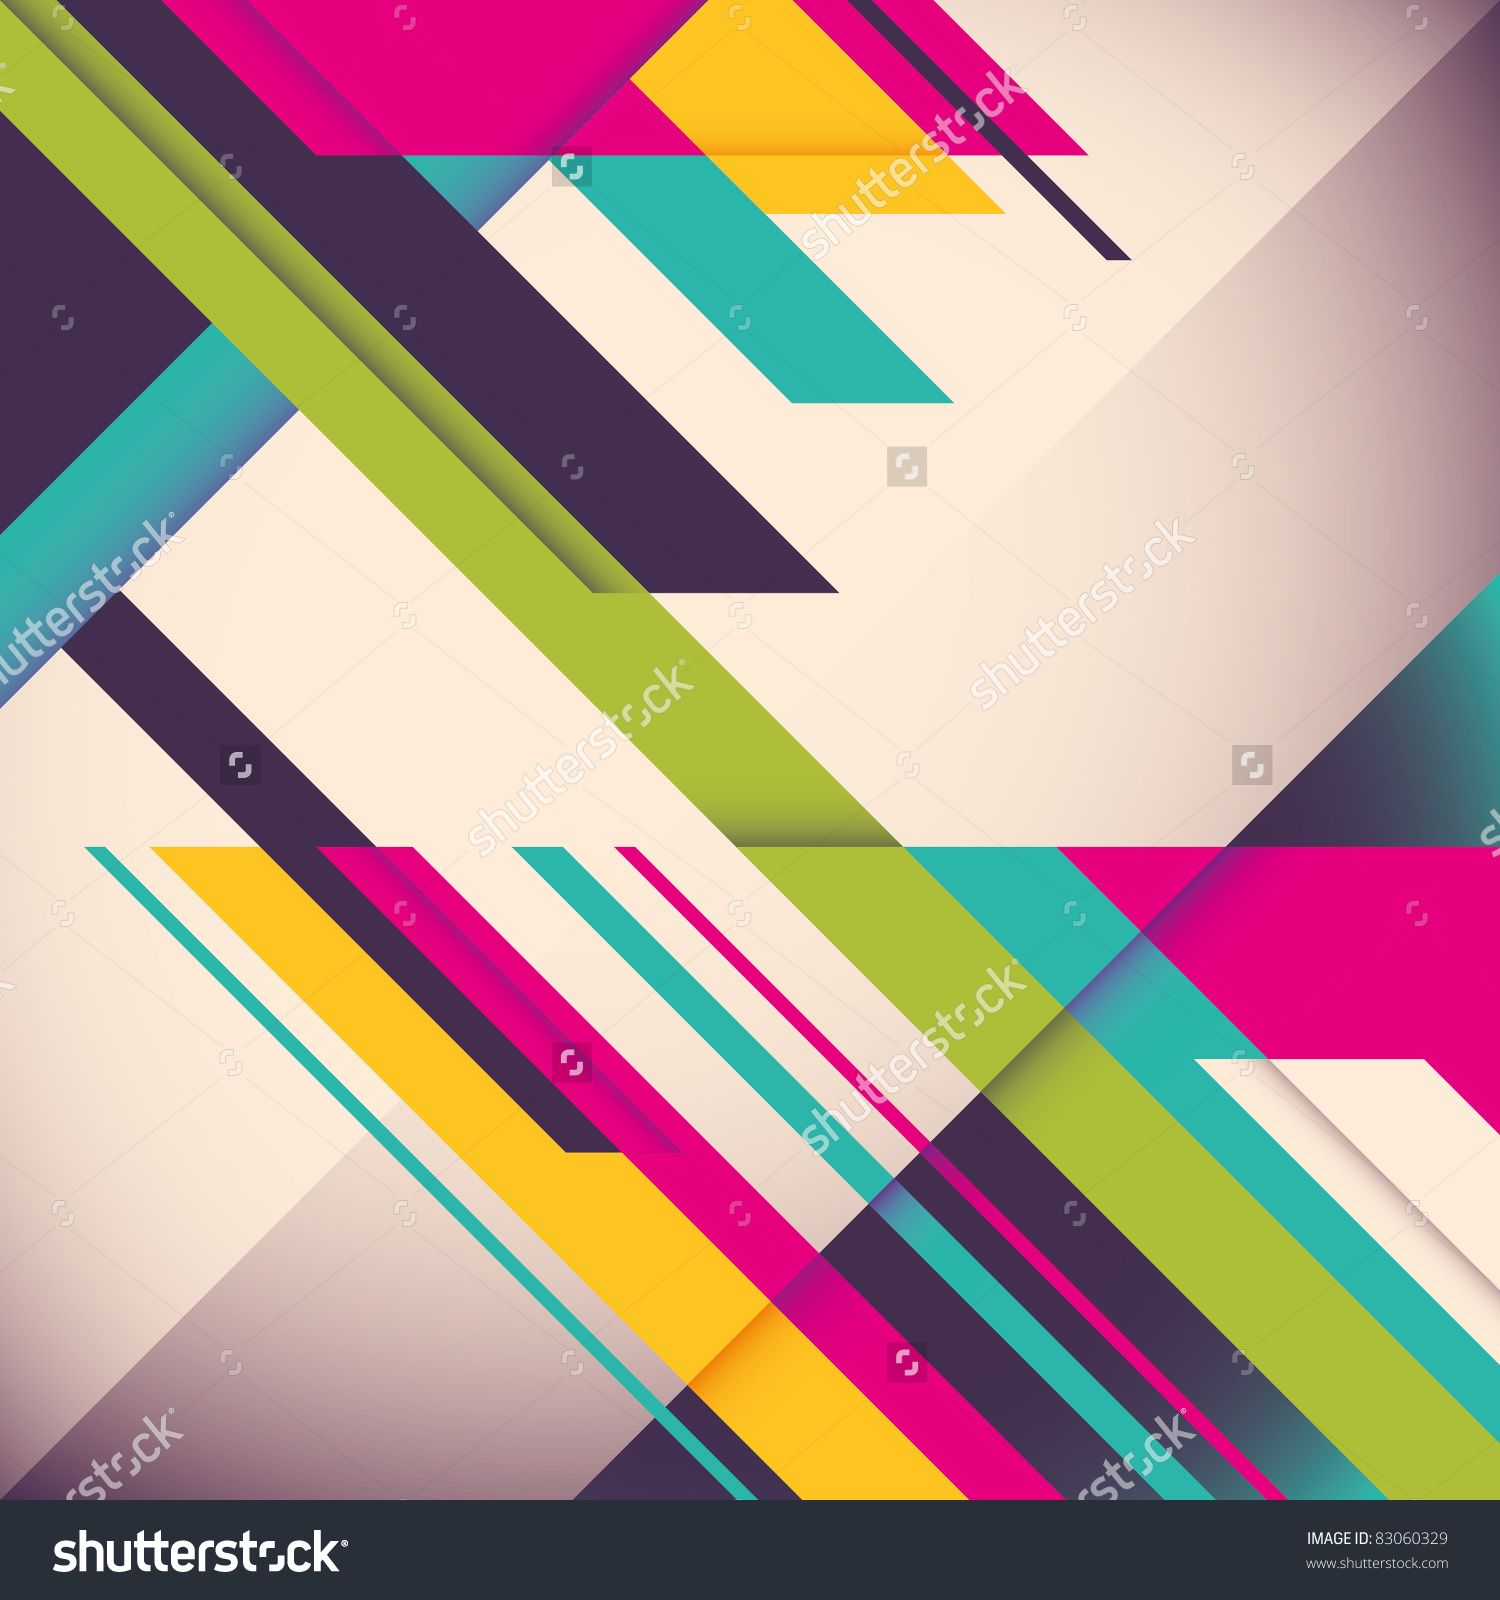 Background image src - Explore Geometric Background Geometric Shapes And More